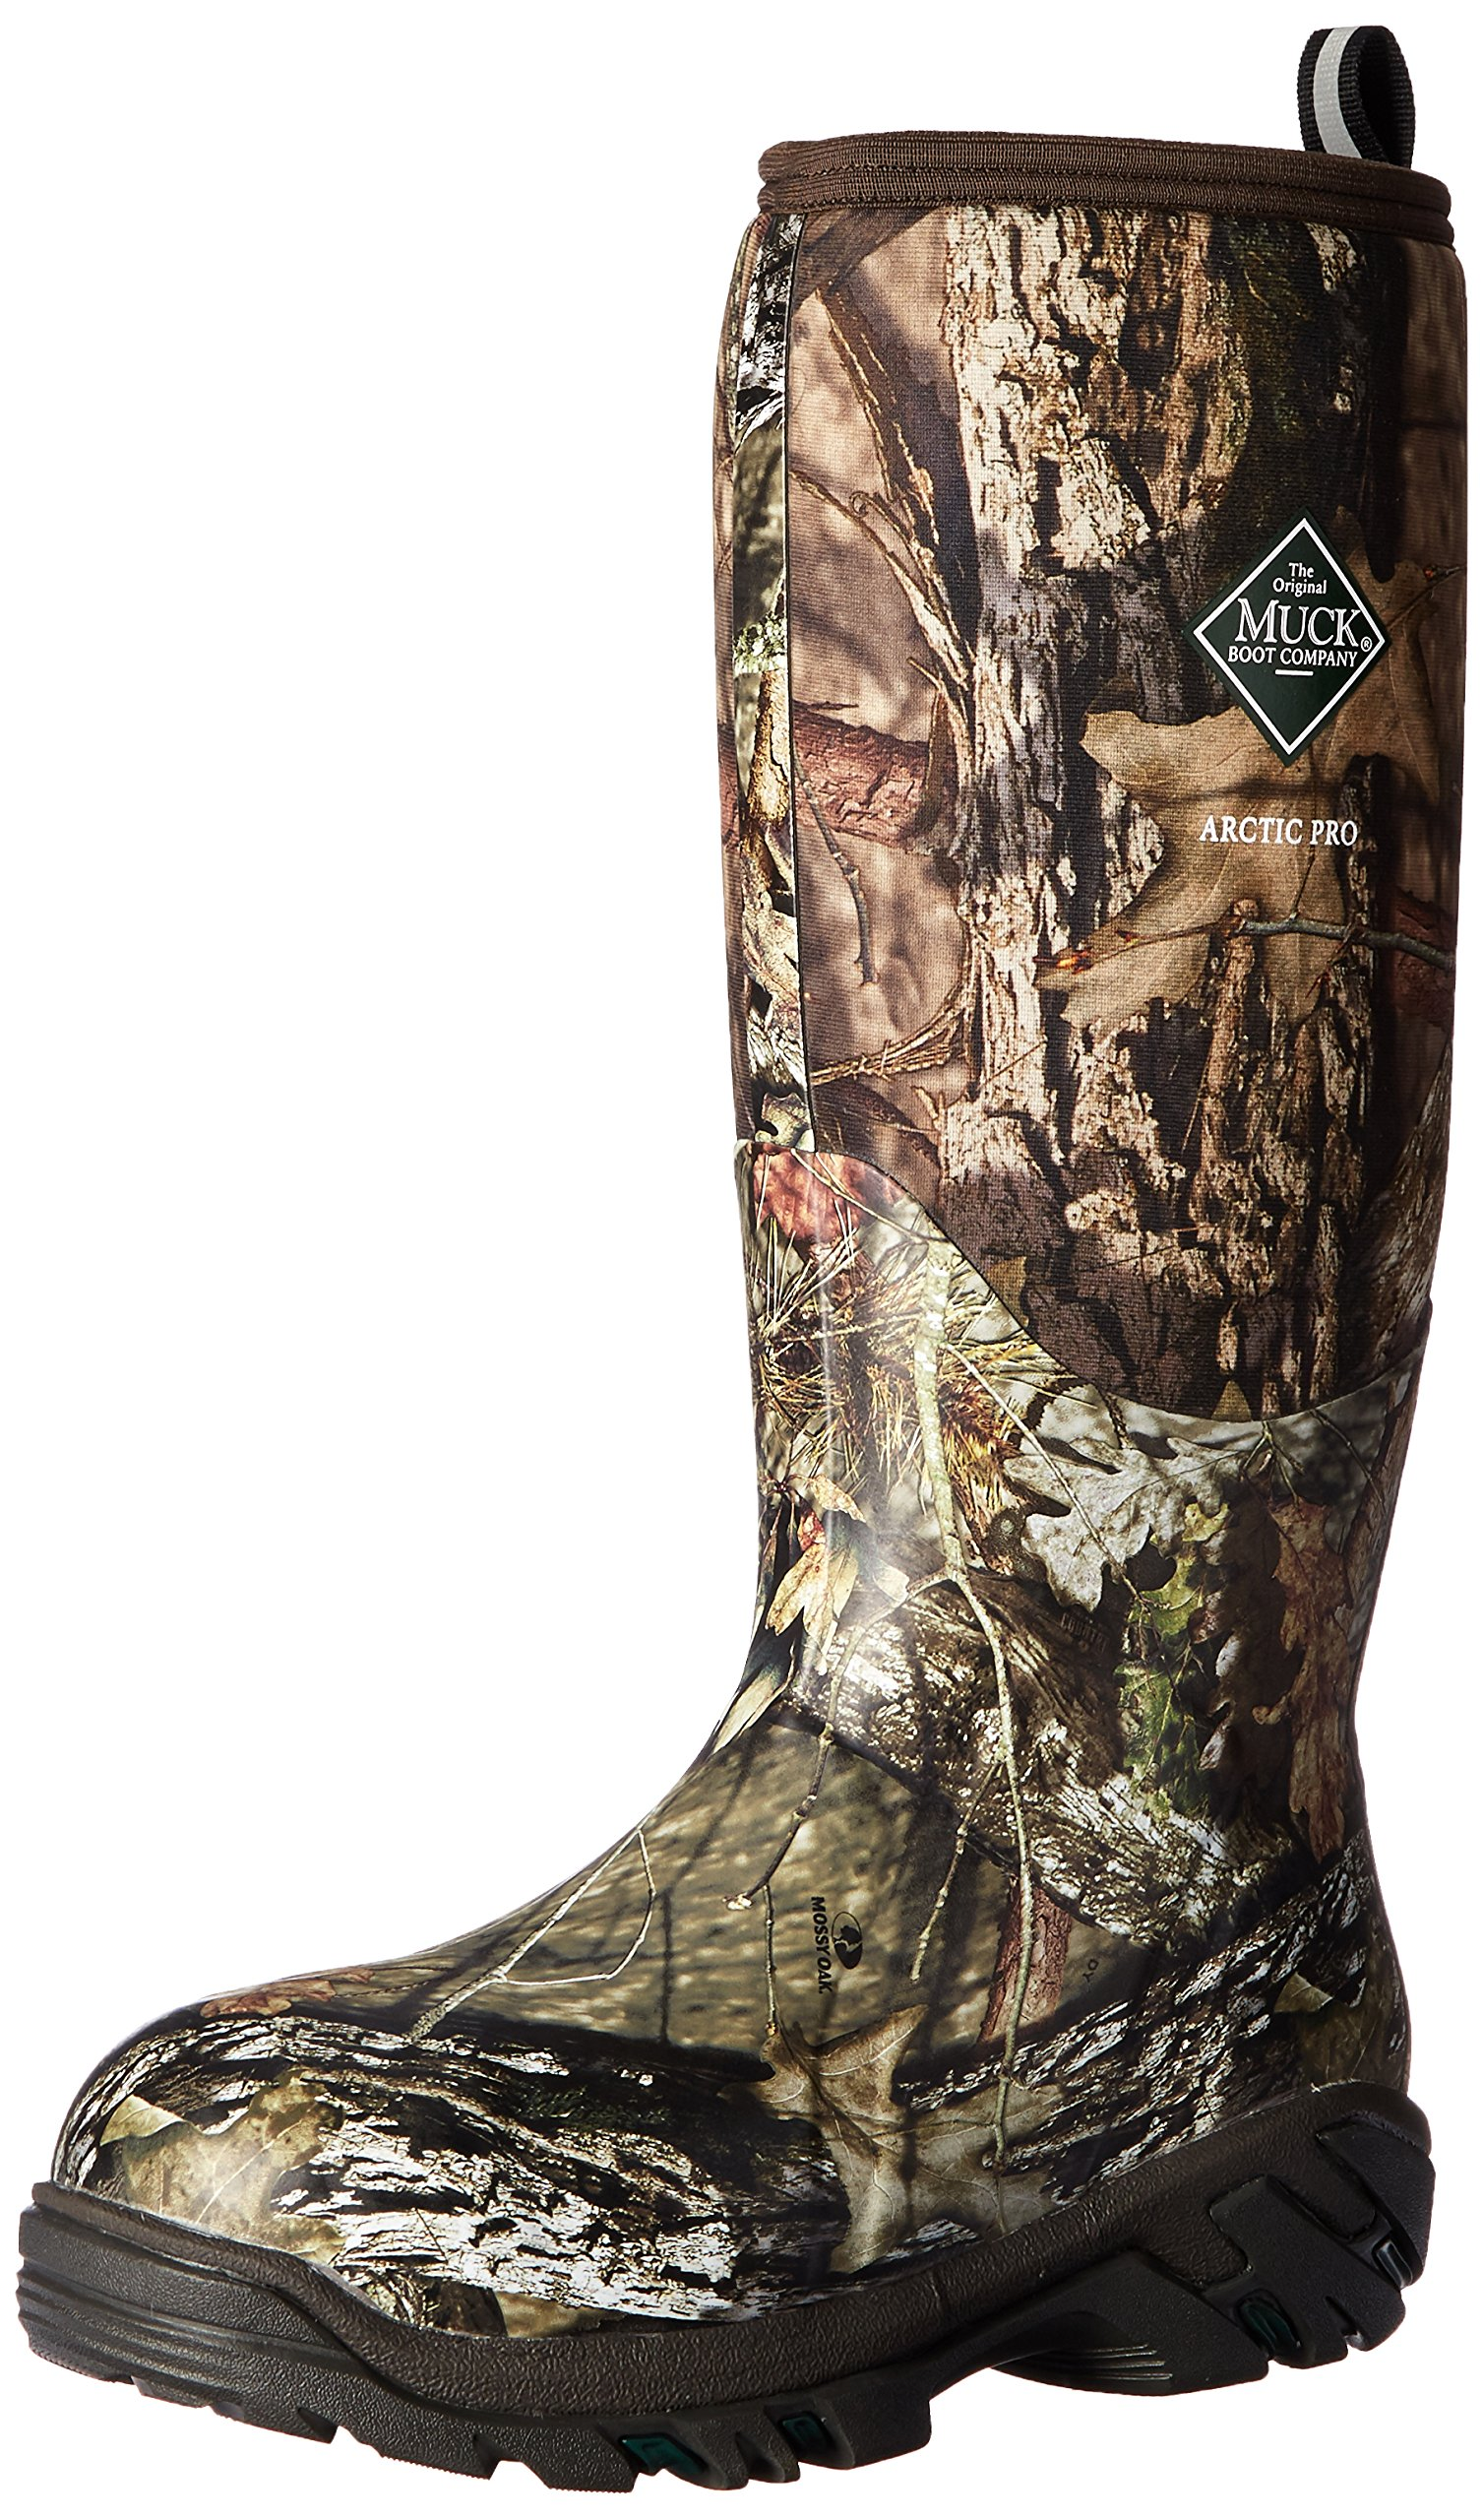 Muck Arctic Pro Tall Rubber Insulated Extreme Conditions Men's Hunting Boots by Muck Boot